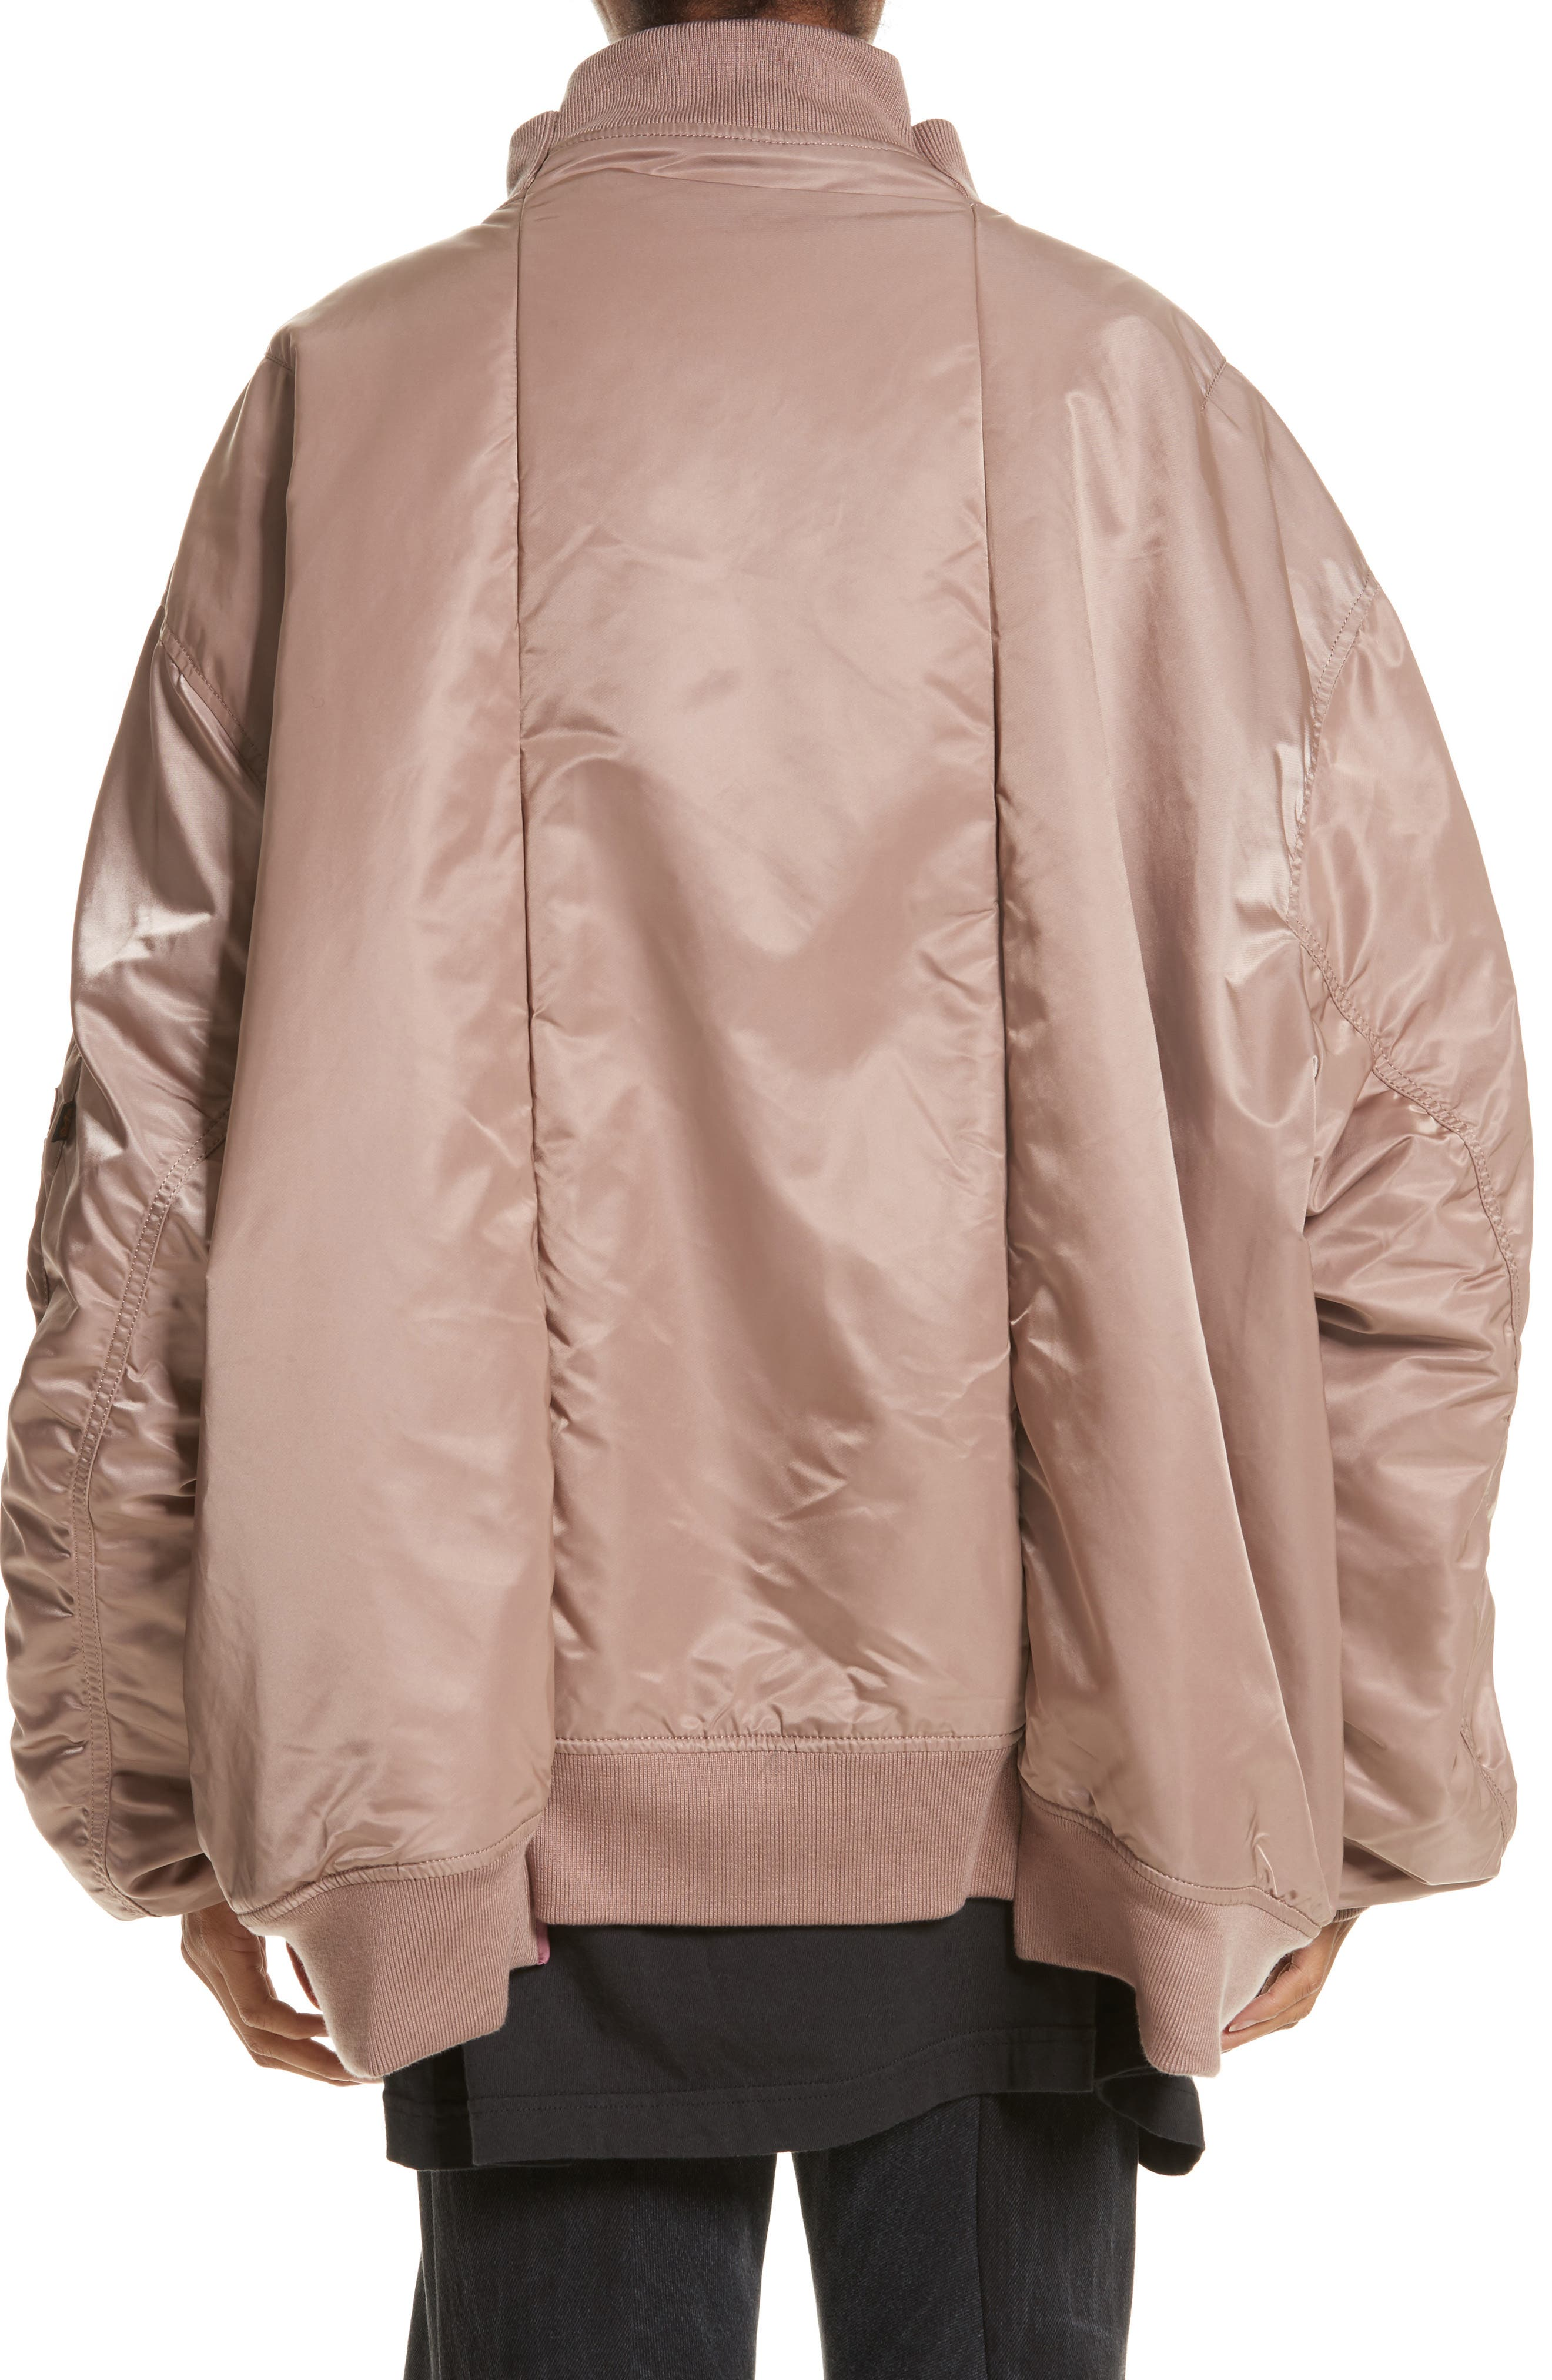 x Alpha Industries Reversible Bomber Jacket,                             Alternate thumbnail 2, color,                             Rose Pink